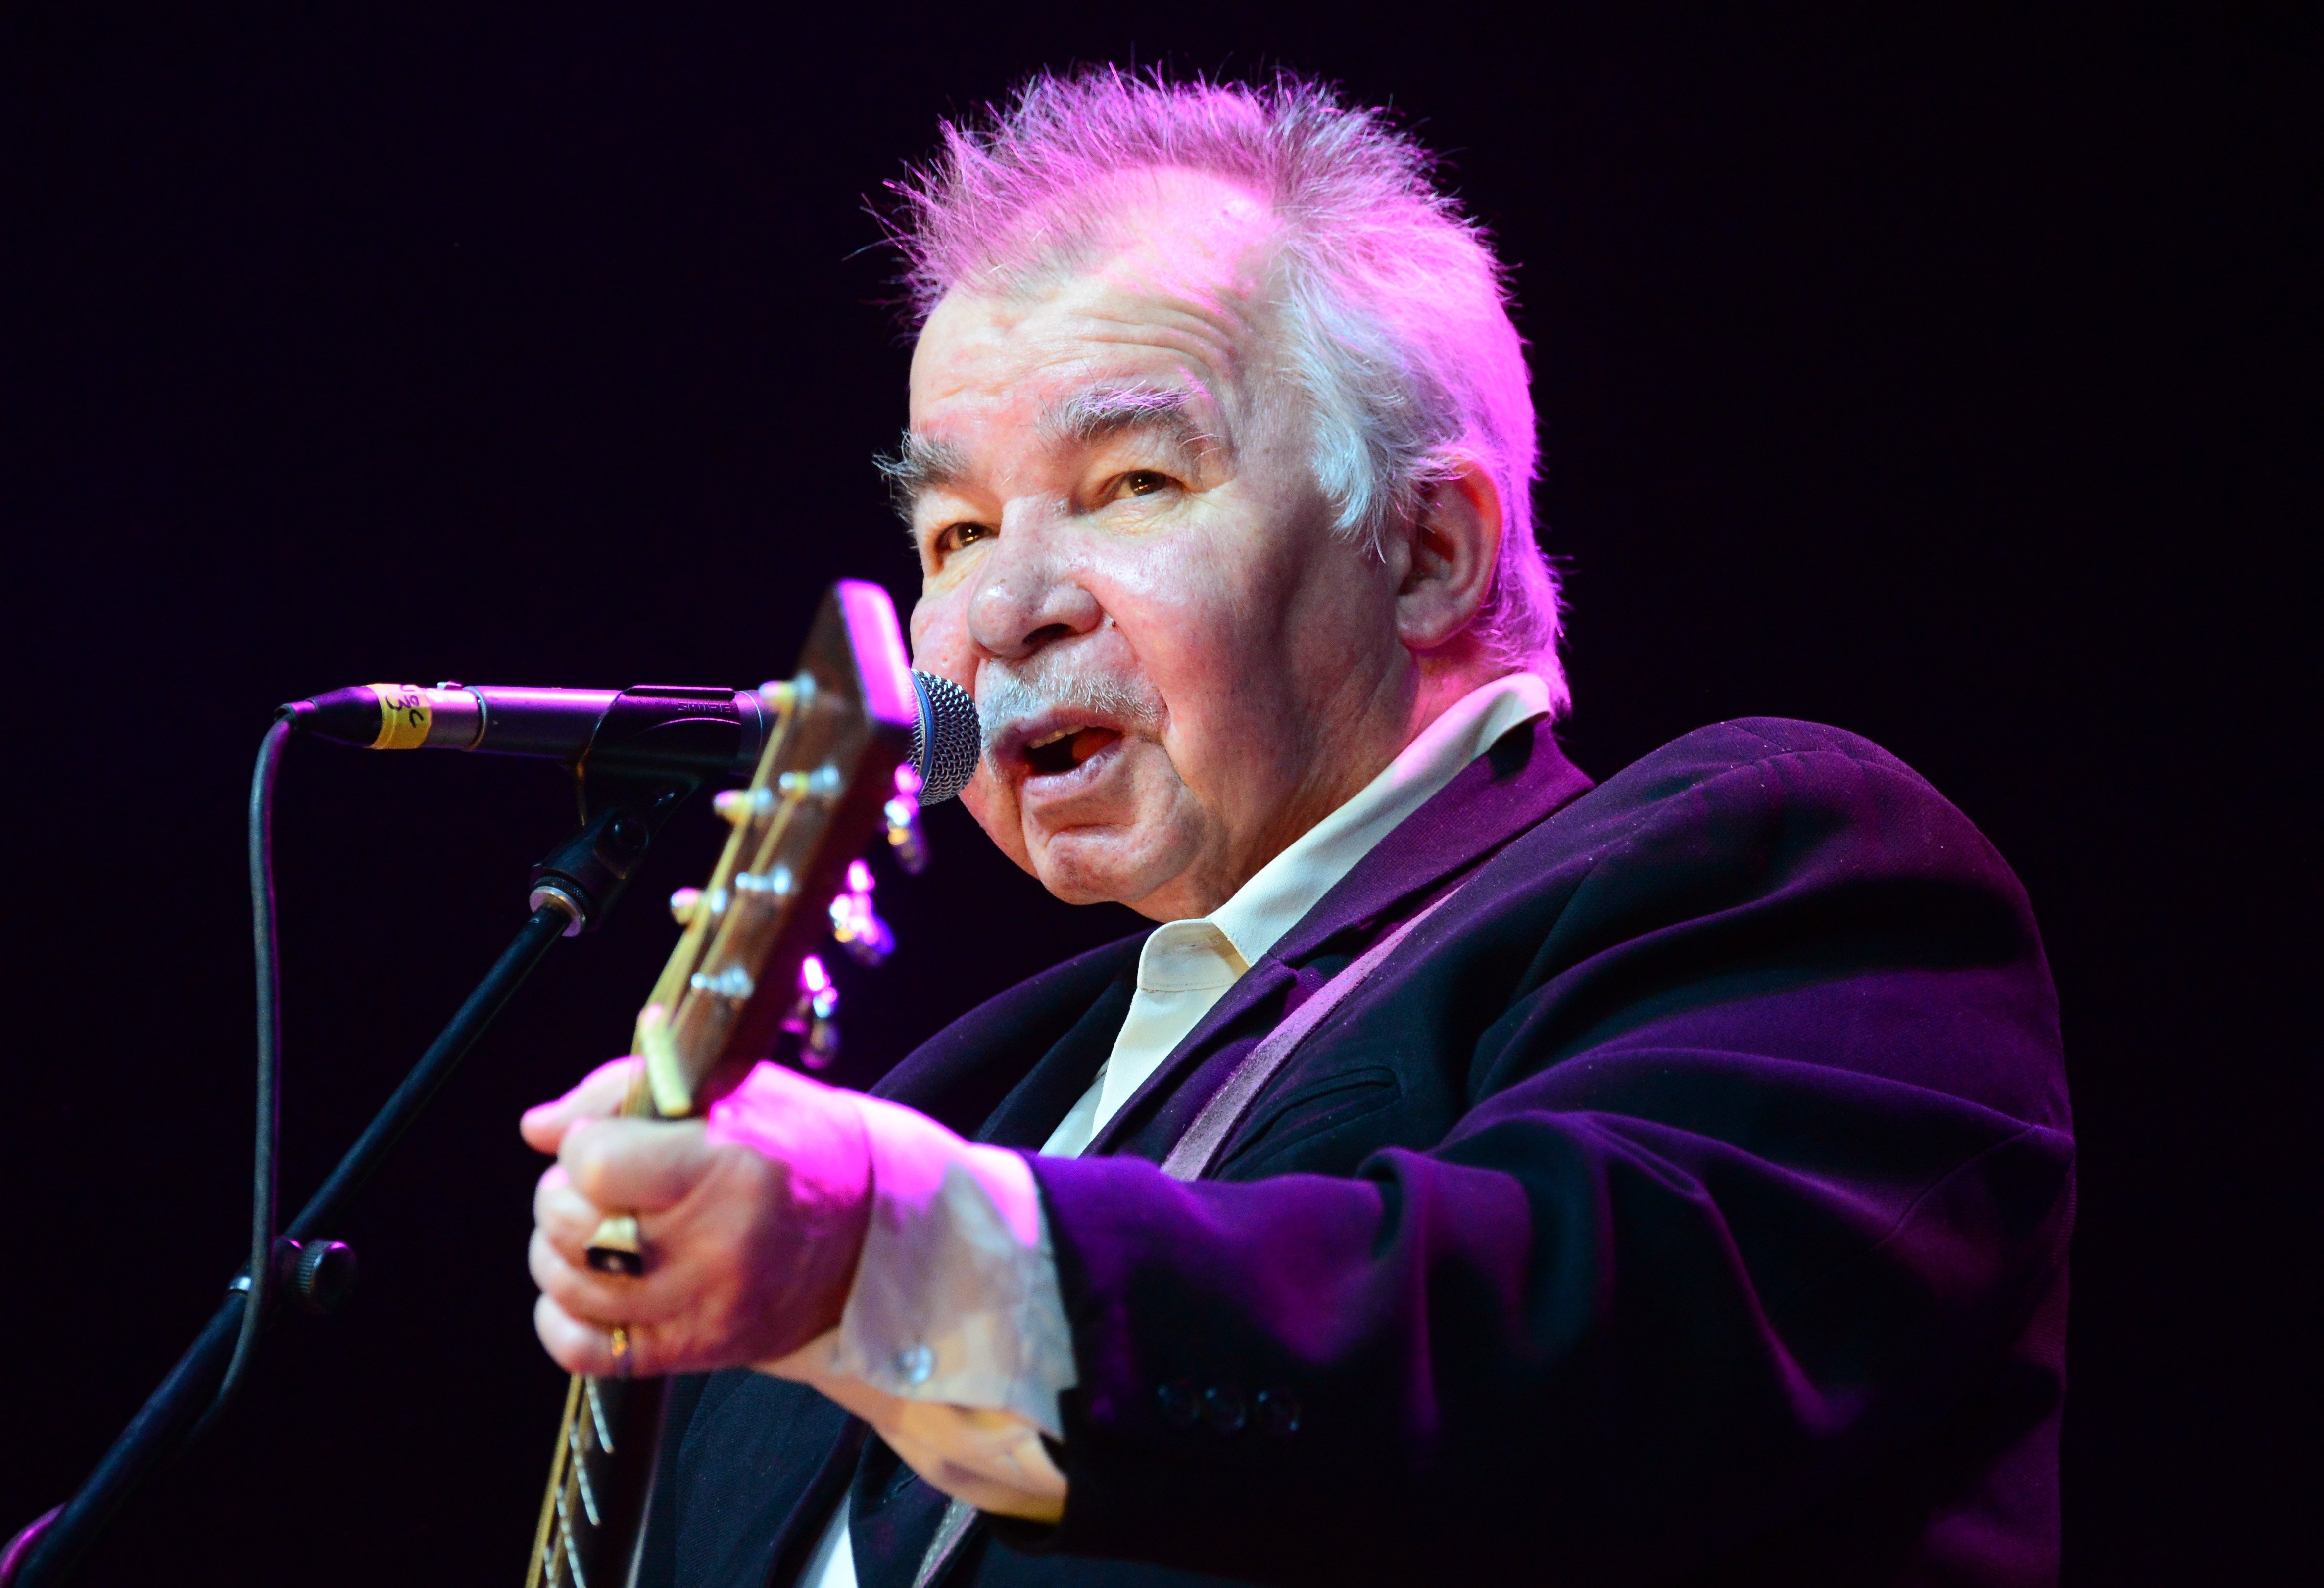 John Prine, influential singer-songwriter, dies at 73